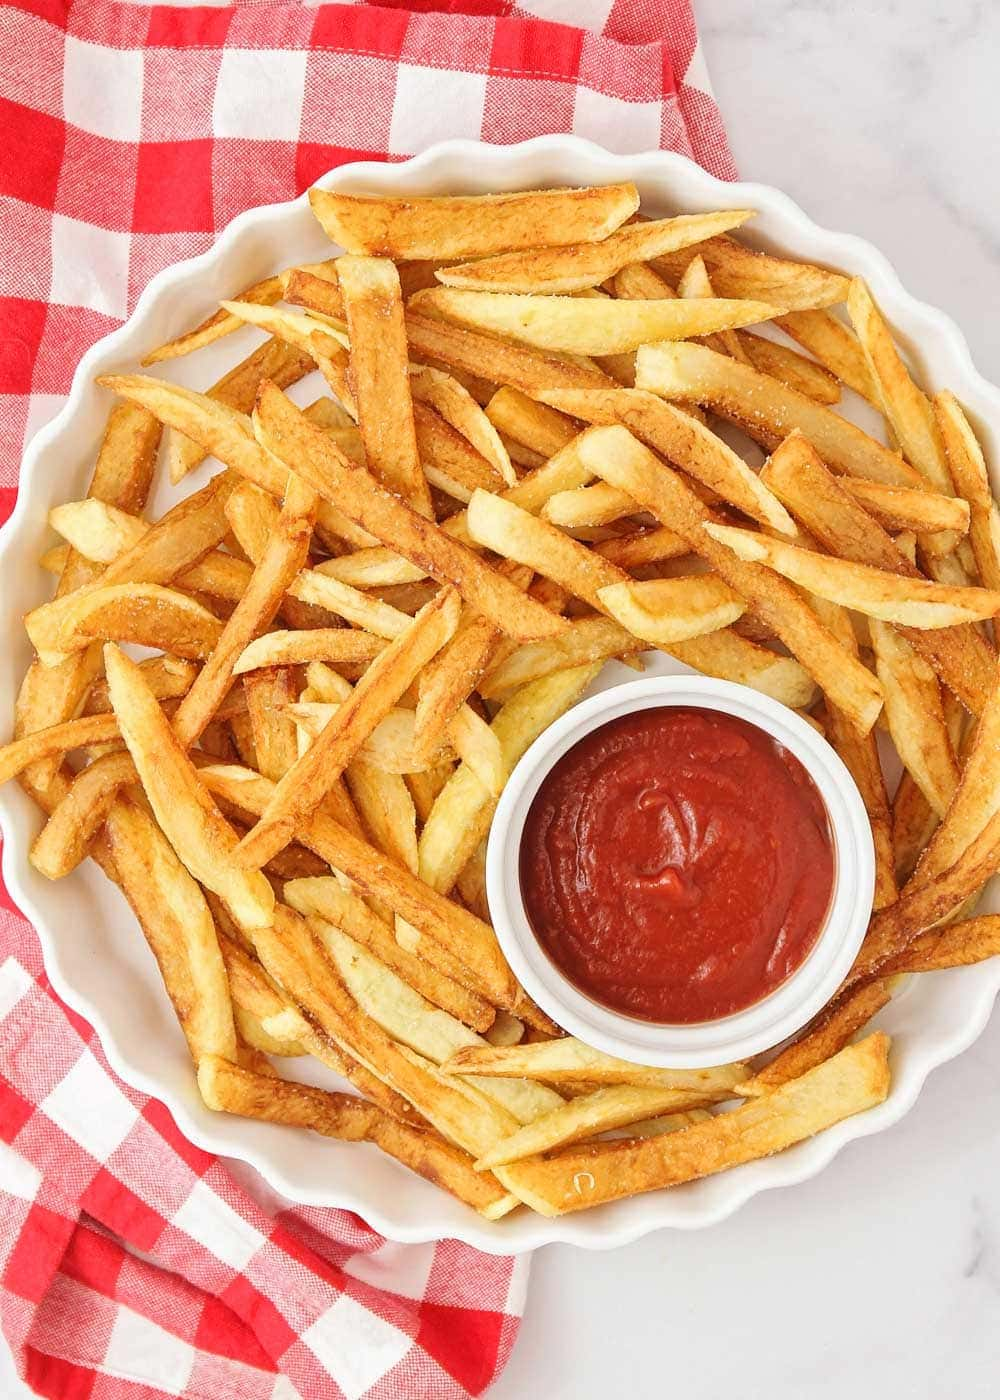 Homemade french fries recipe in dish with ketchup